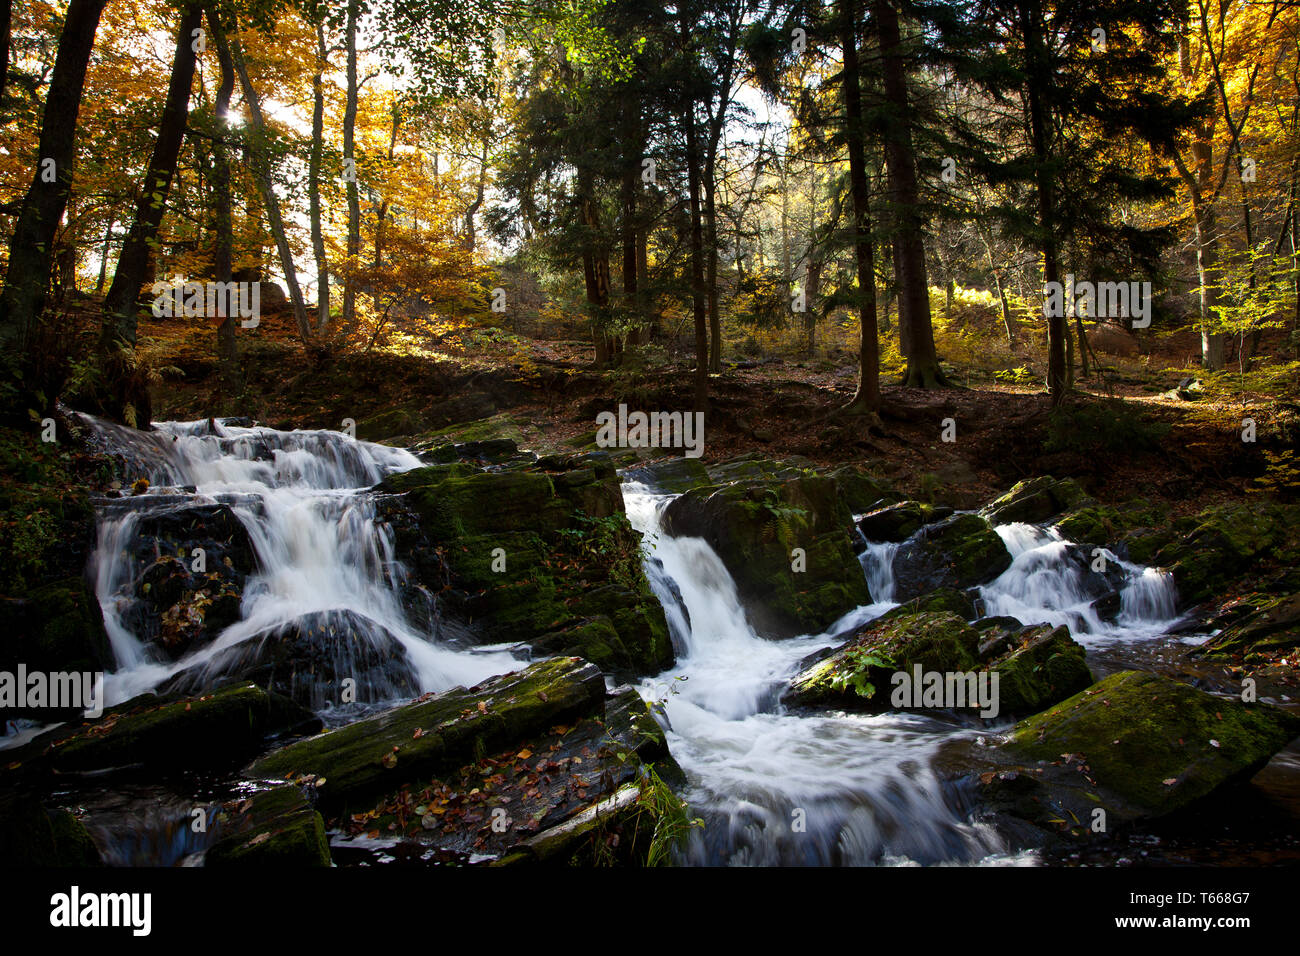 Stream Selke, Harz Mountains, Germany - Stock Image